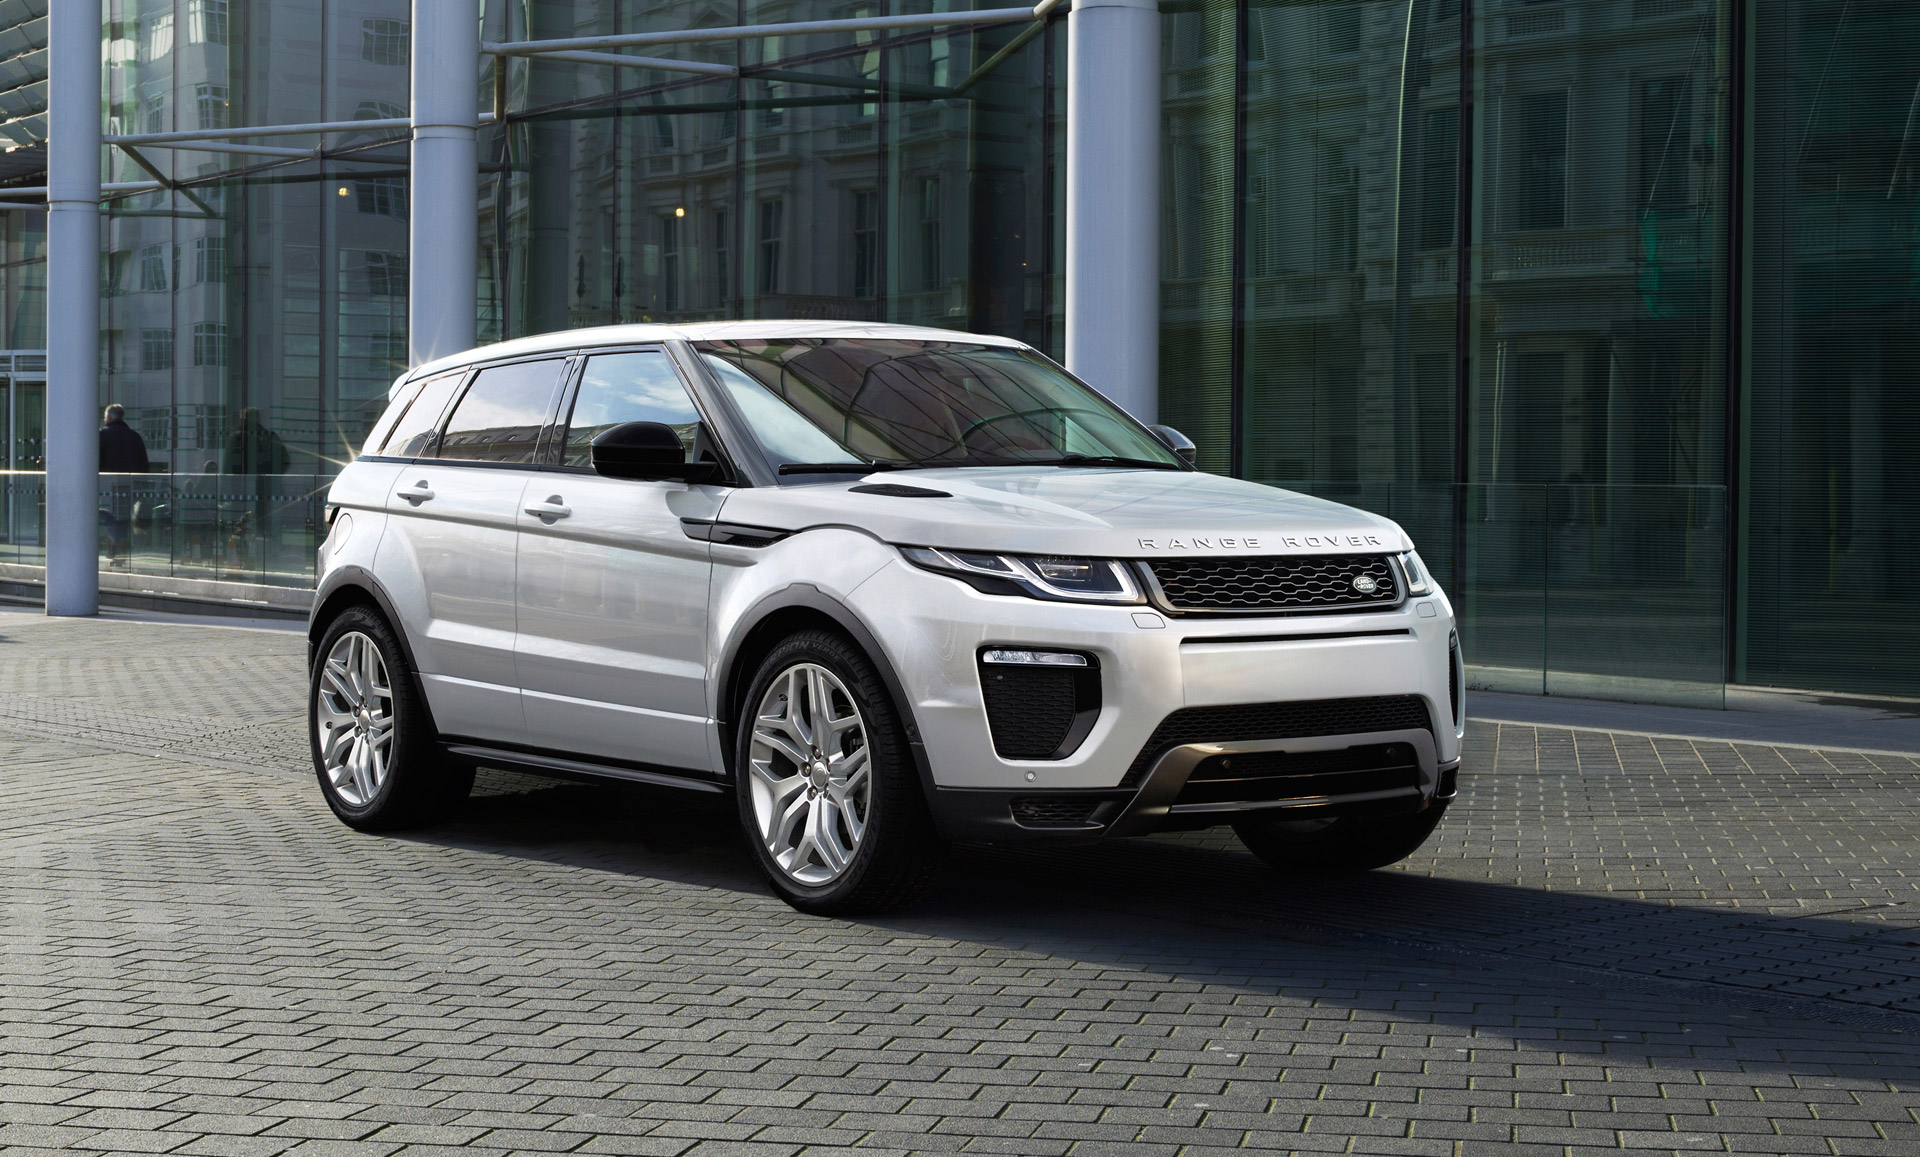 new and used land rover range rover evoque prices photos reviews specs the car connection. Black Bedroom Furniture Sets. Home Design Ideas